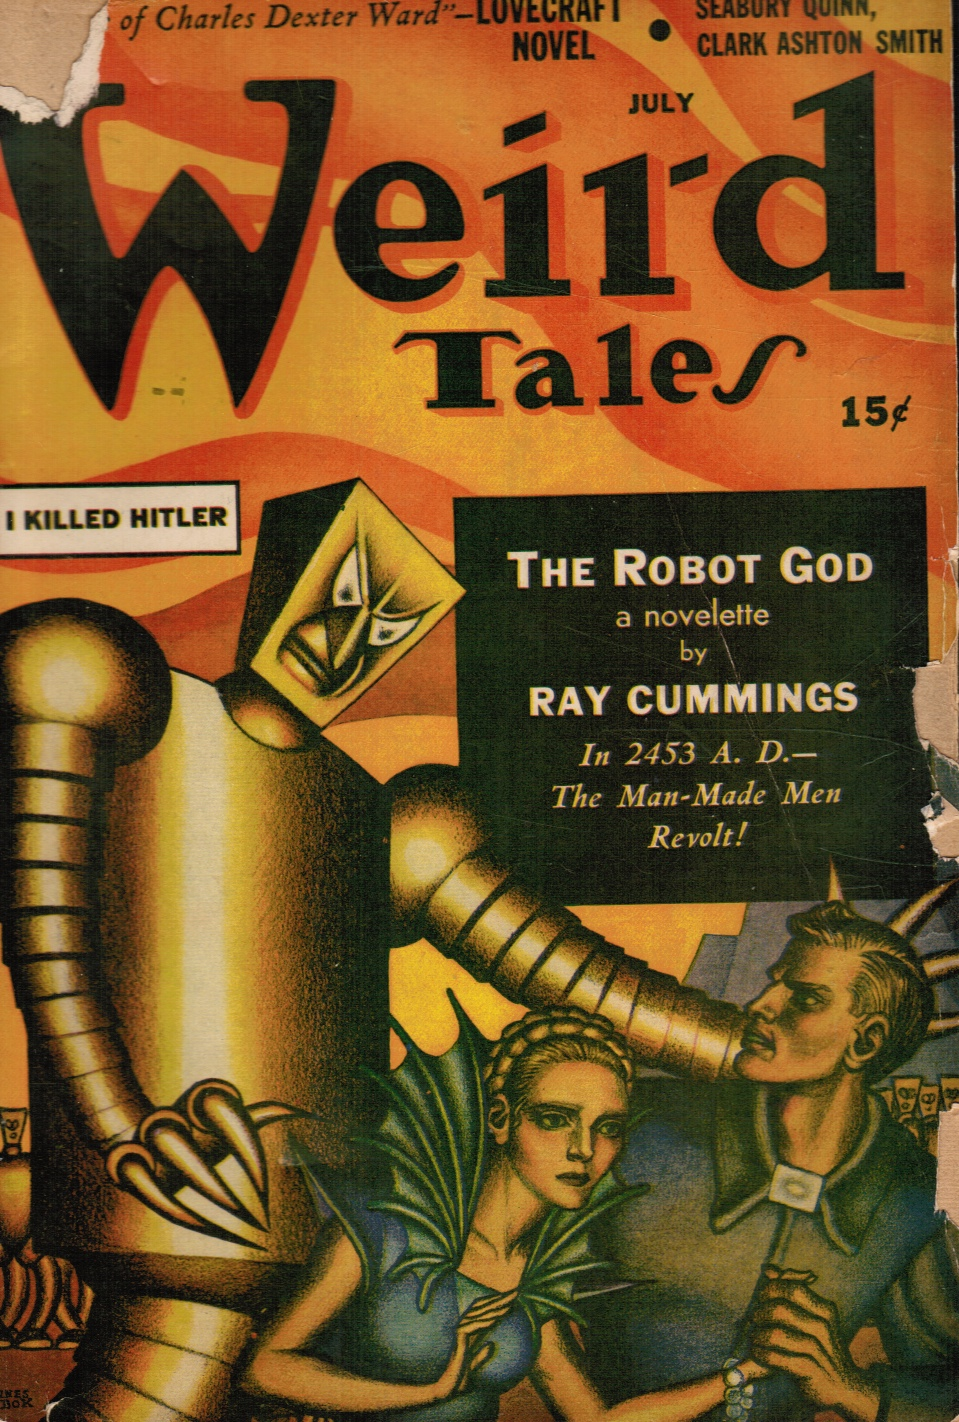 Weird Tales - July 1941 - Vol. 35, No. 10 I Killed Hitler